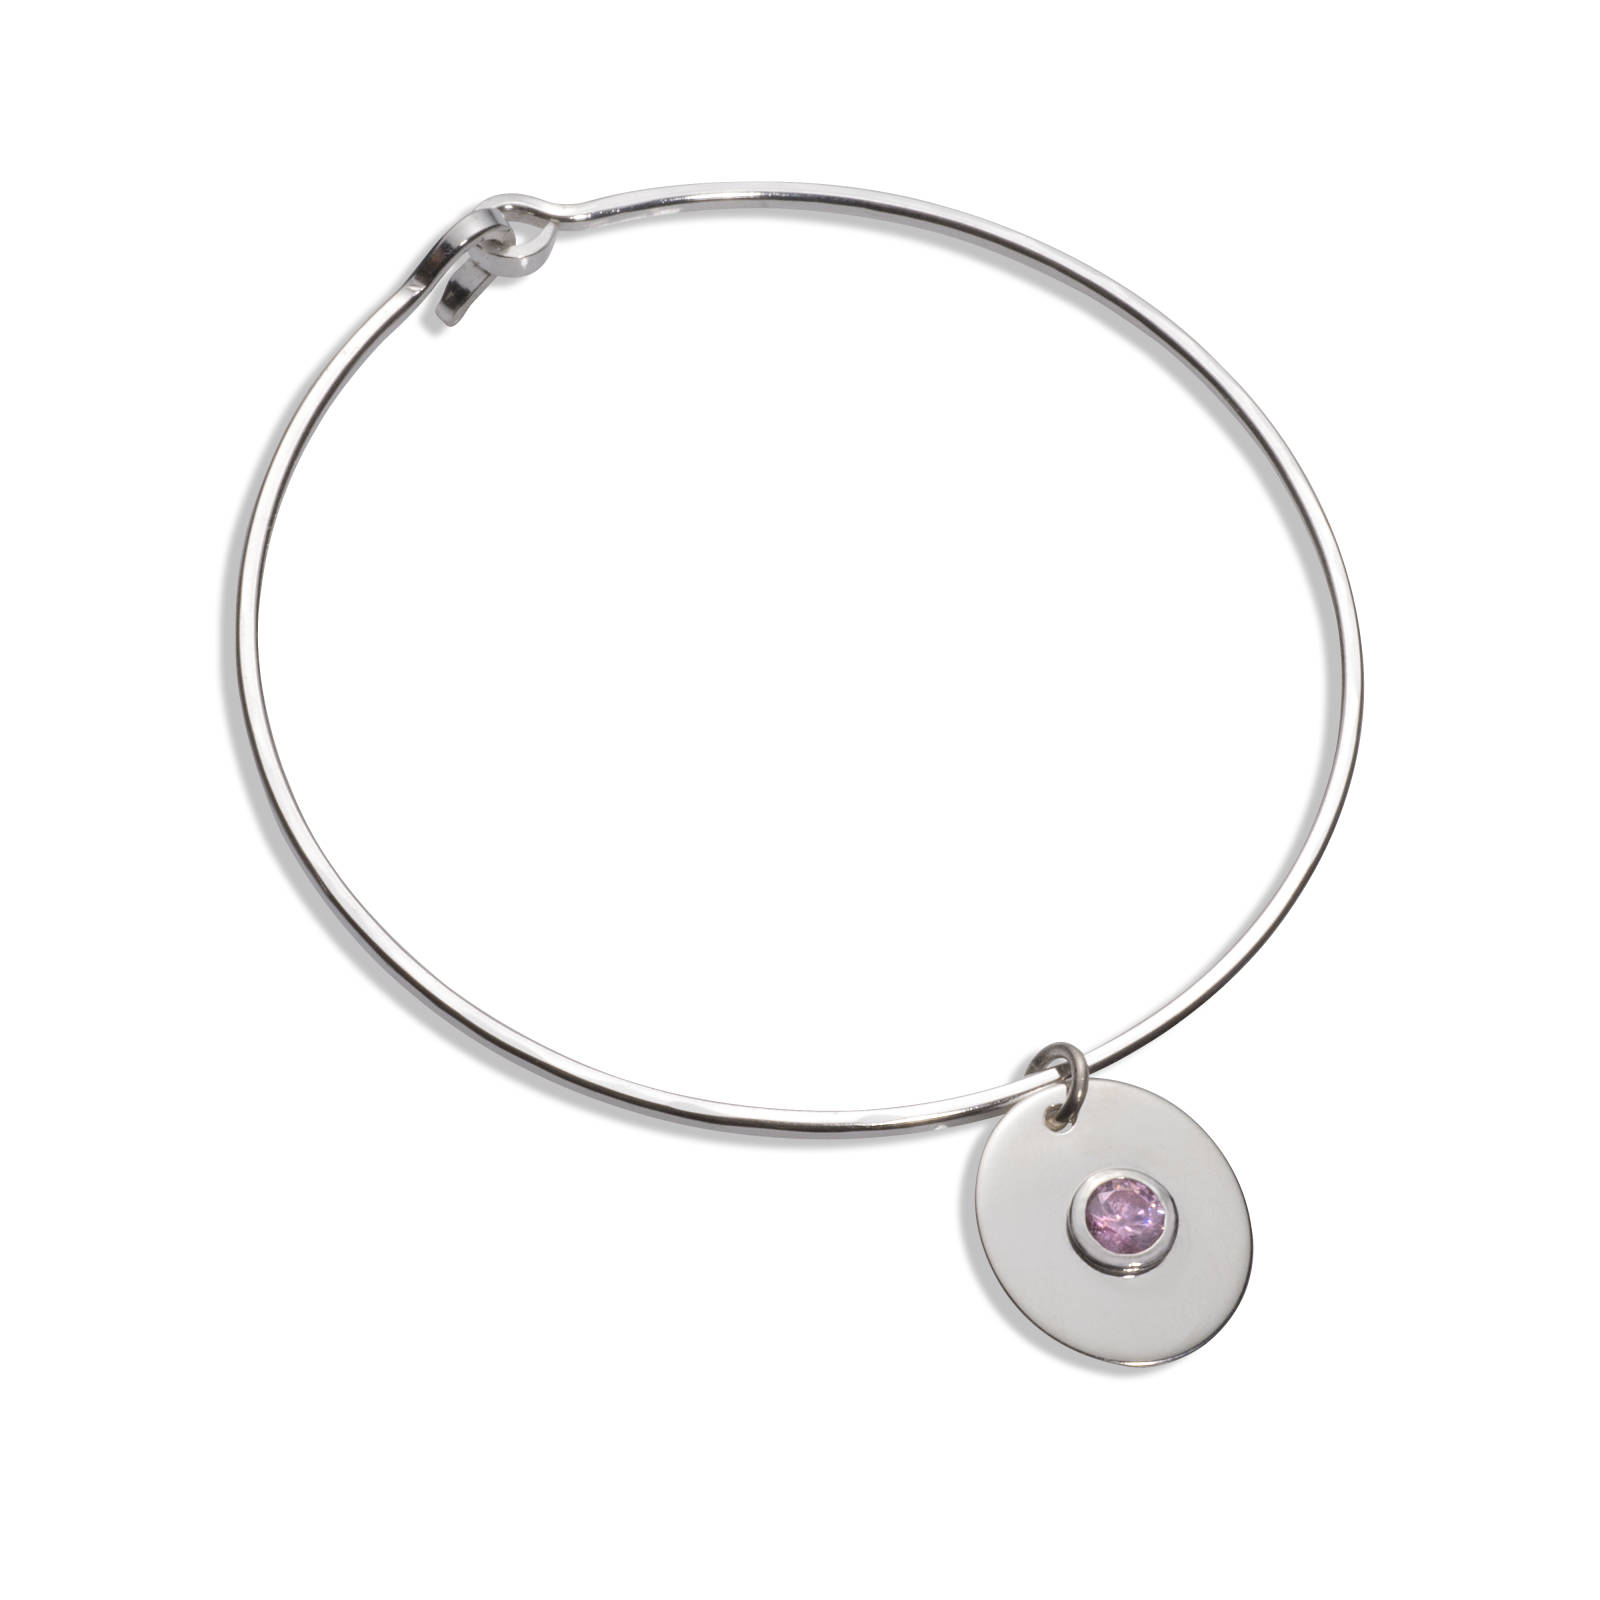 initial jewelry wine personalized five custom four bracelet w bangle bangles shop charms now charm